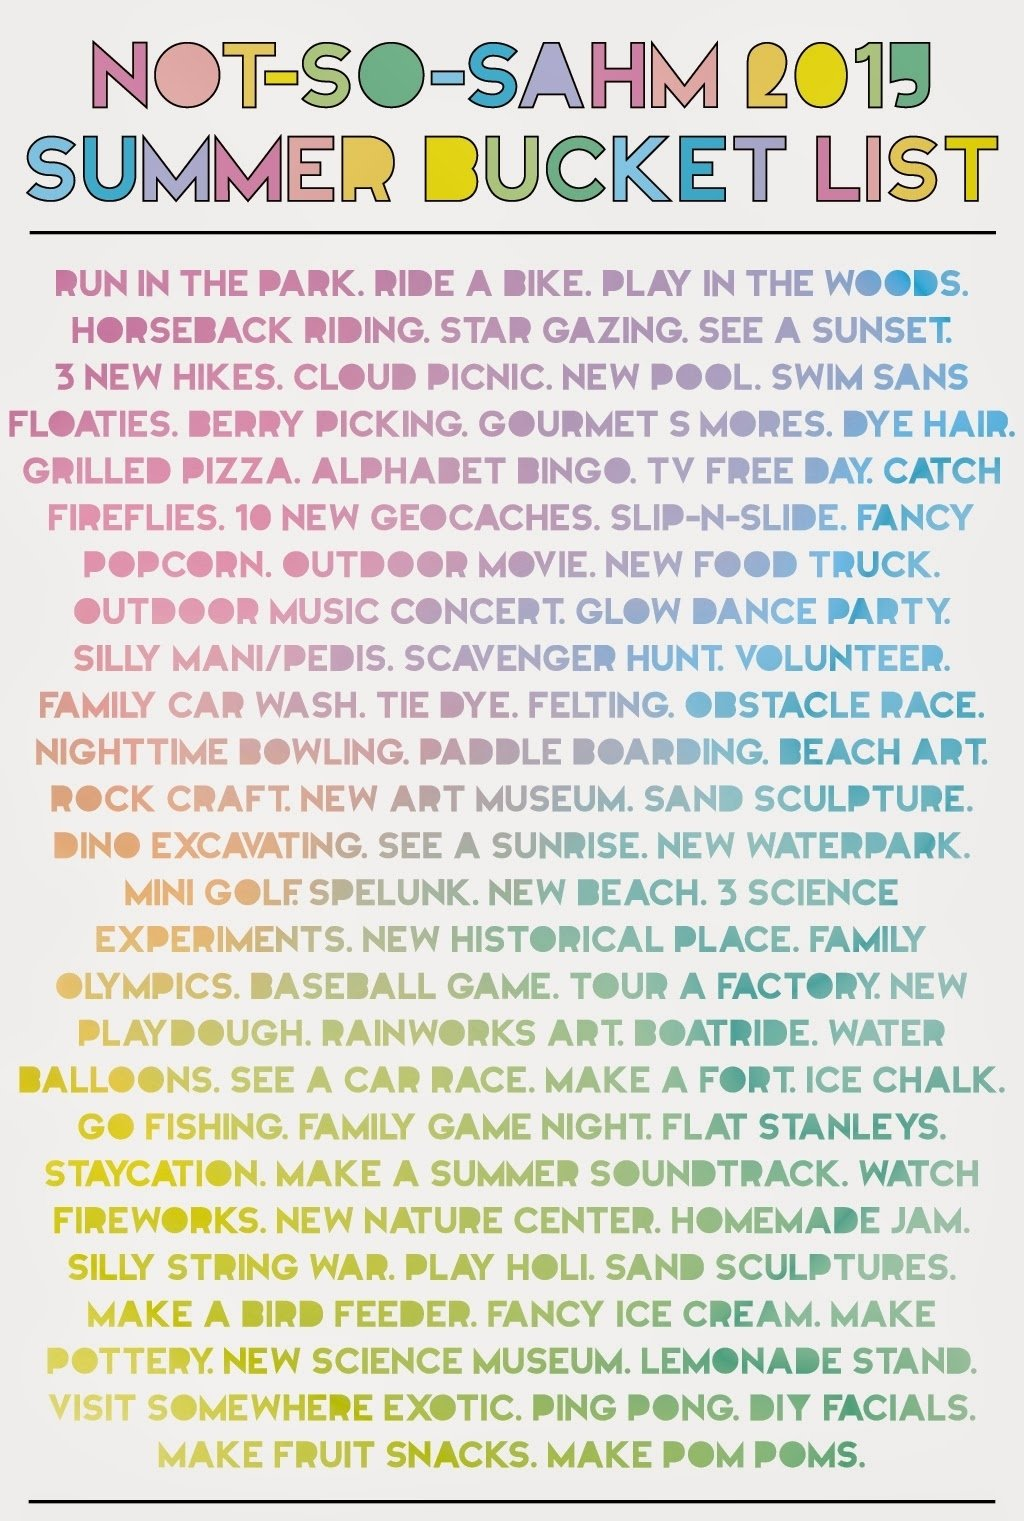 10 Amazing Summer Bucket List Ideas For Teenagers not so sahm 2015 summer bucket list 75 ideas of summer fun 2 2020